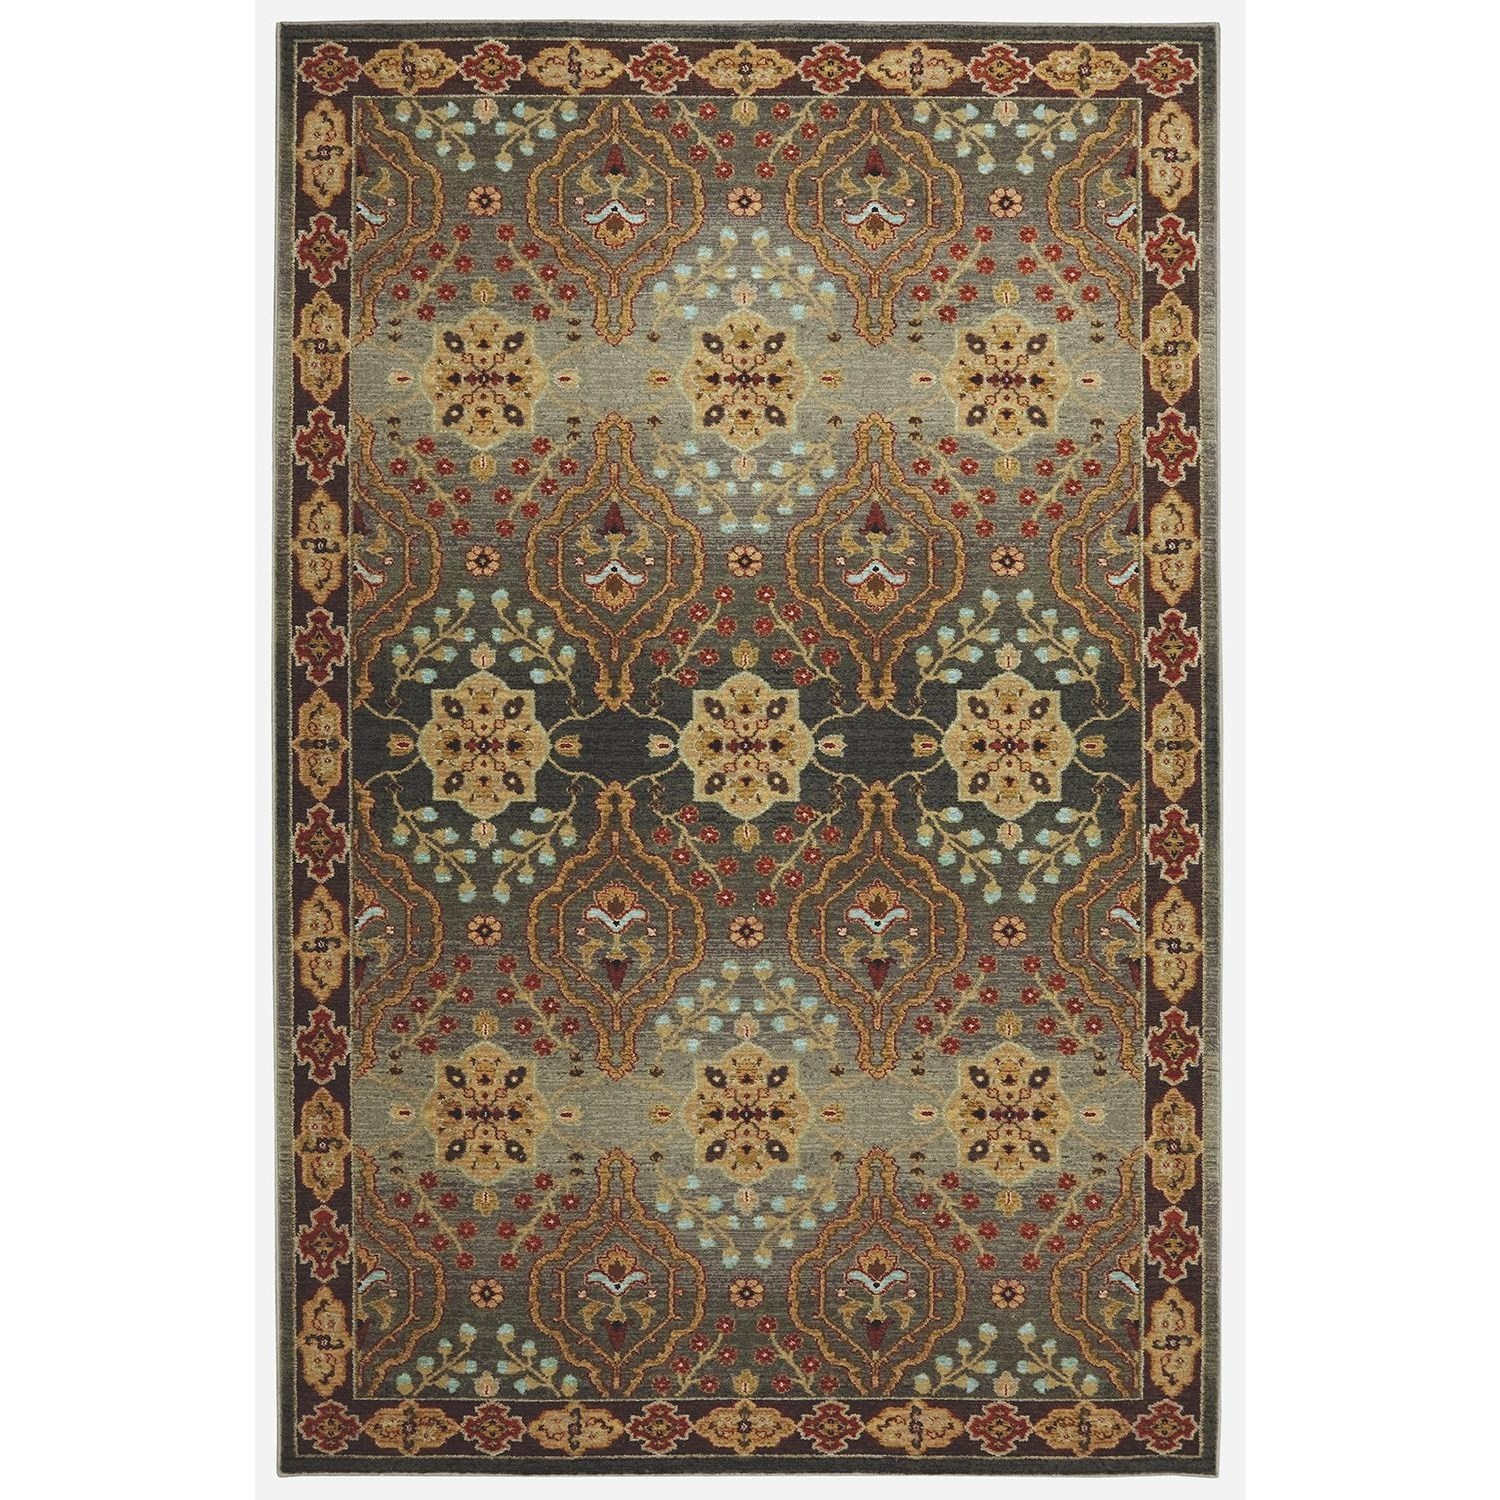 Sovereign 8'8x12' Contessa Rug by Karastan Rugs at Darvin Furniture